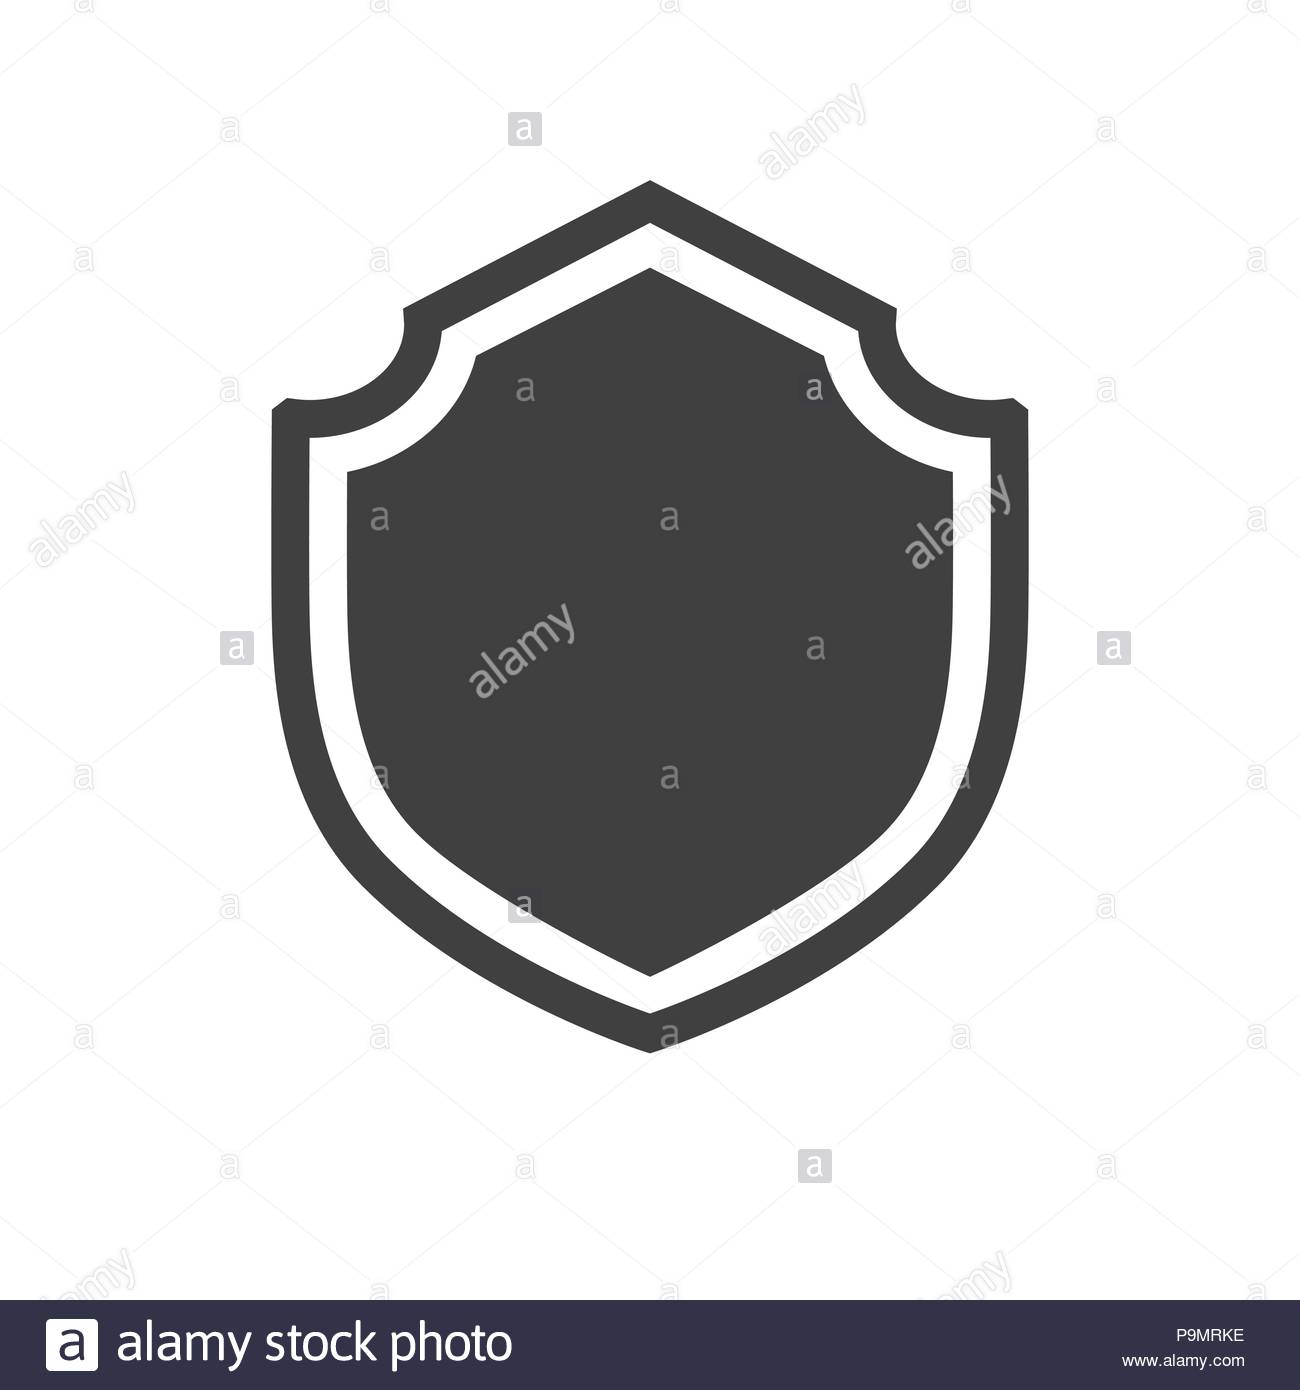 Shield Vector - Shield Vector Icon Stock Vector Art & Illustration, Vector Image ...